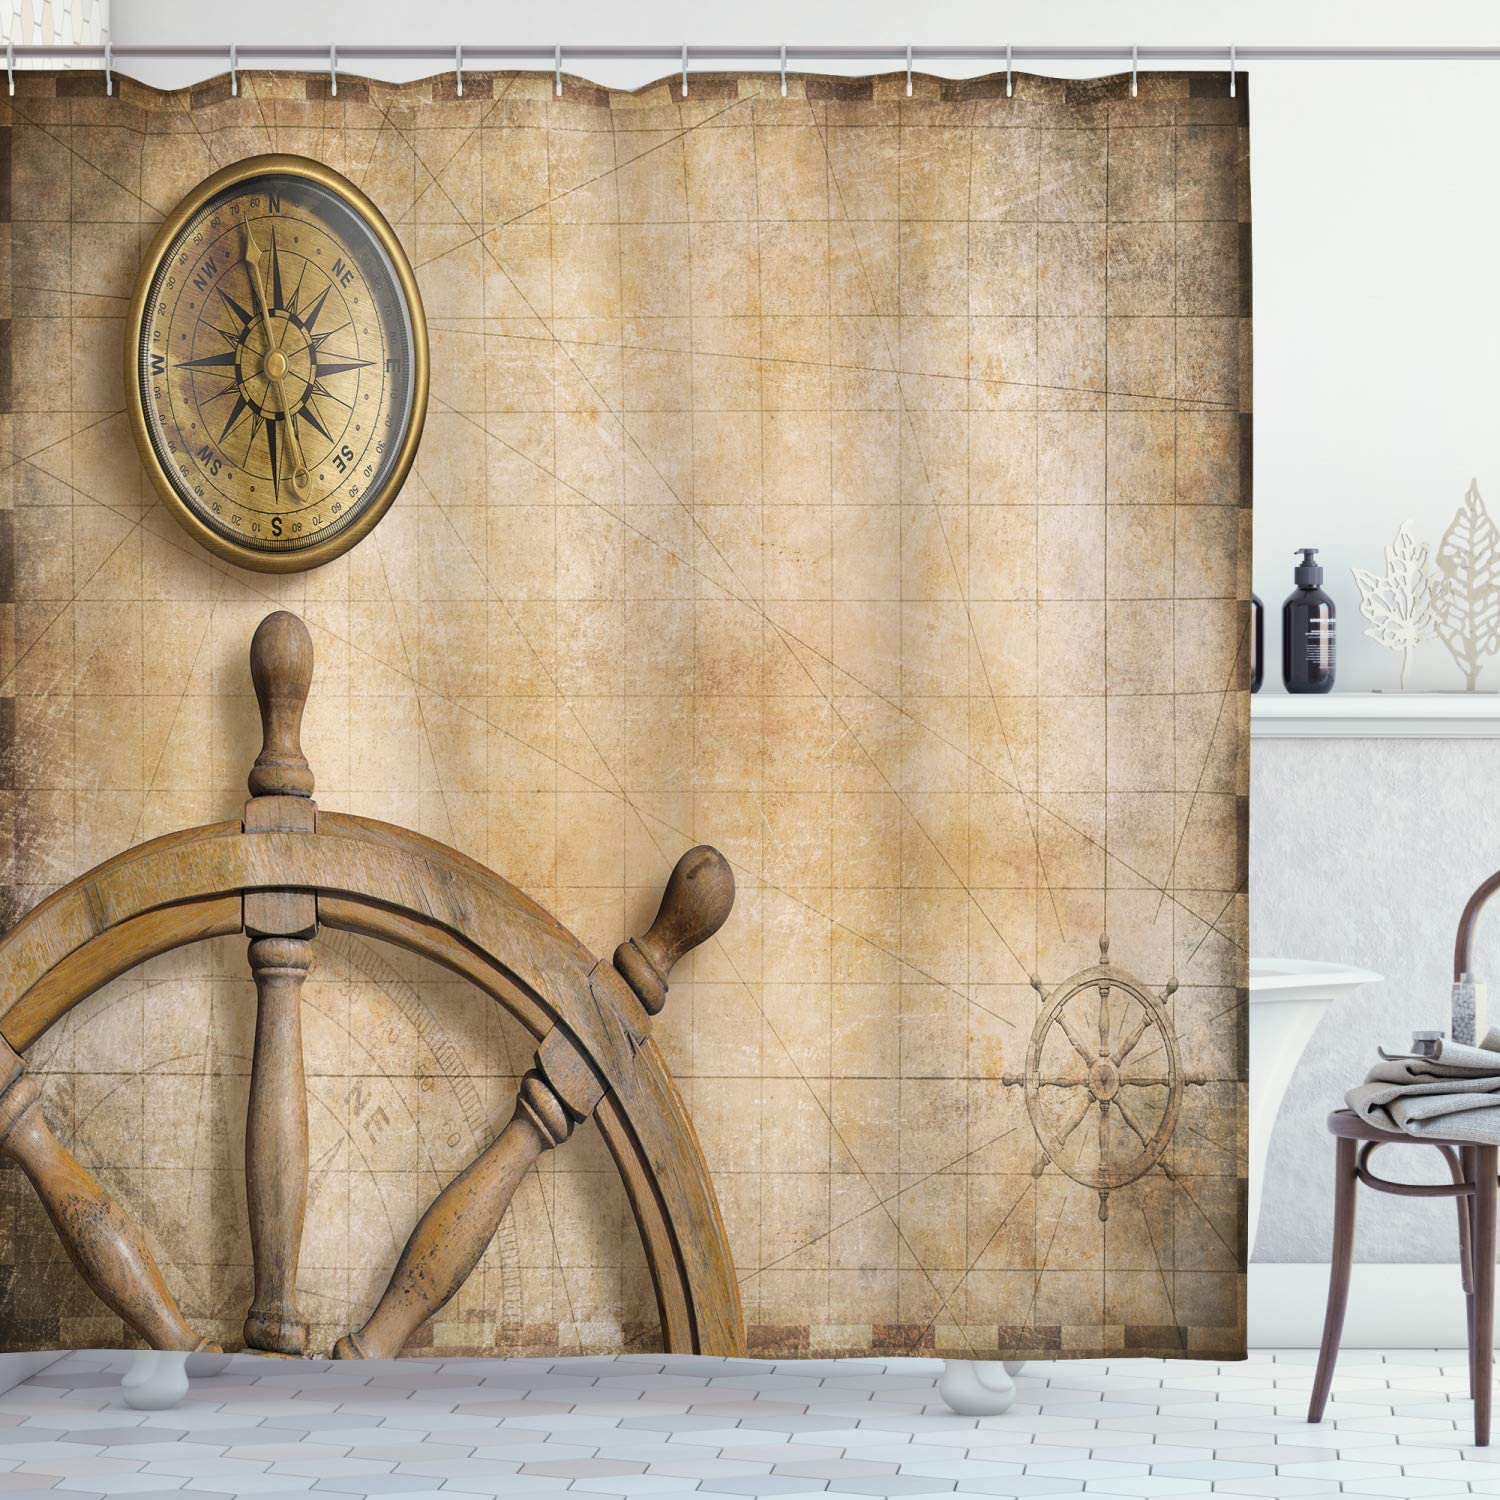 Ambesonne Nautical Shower Curtain, Steering Wheel Compass Vintage Map Setting Captain's Chamber Finding Treasure Print, Cloth Fabric Bathroom Decor Set with Hooks, 75